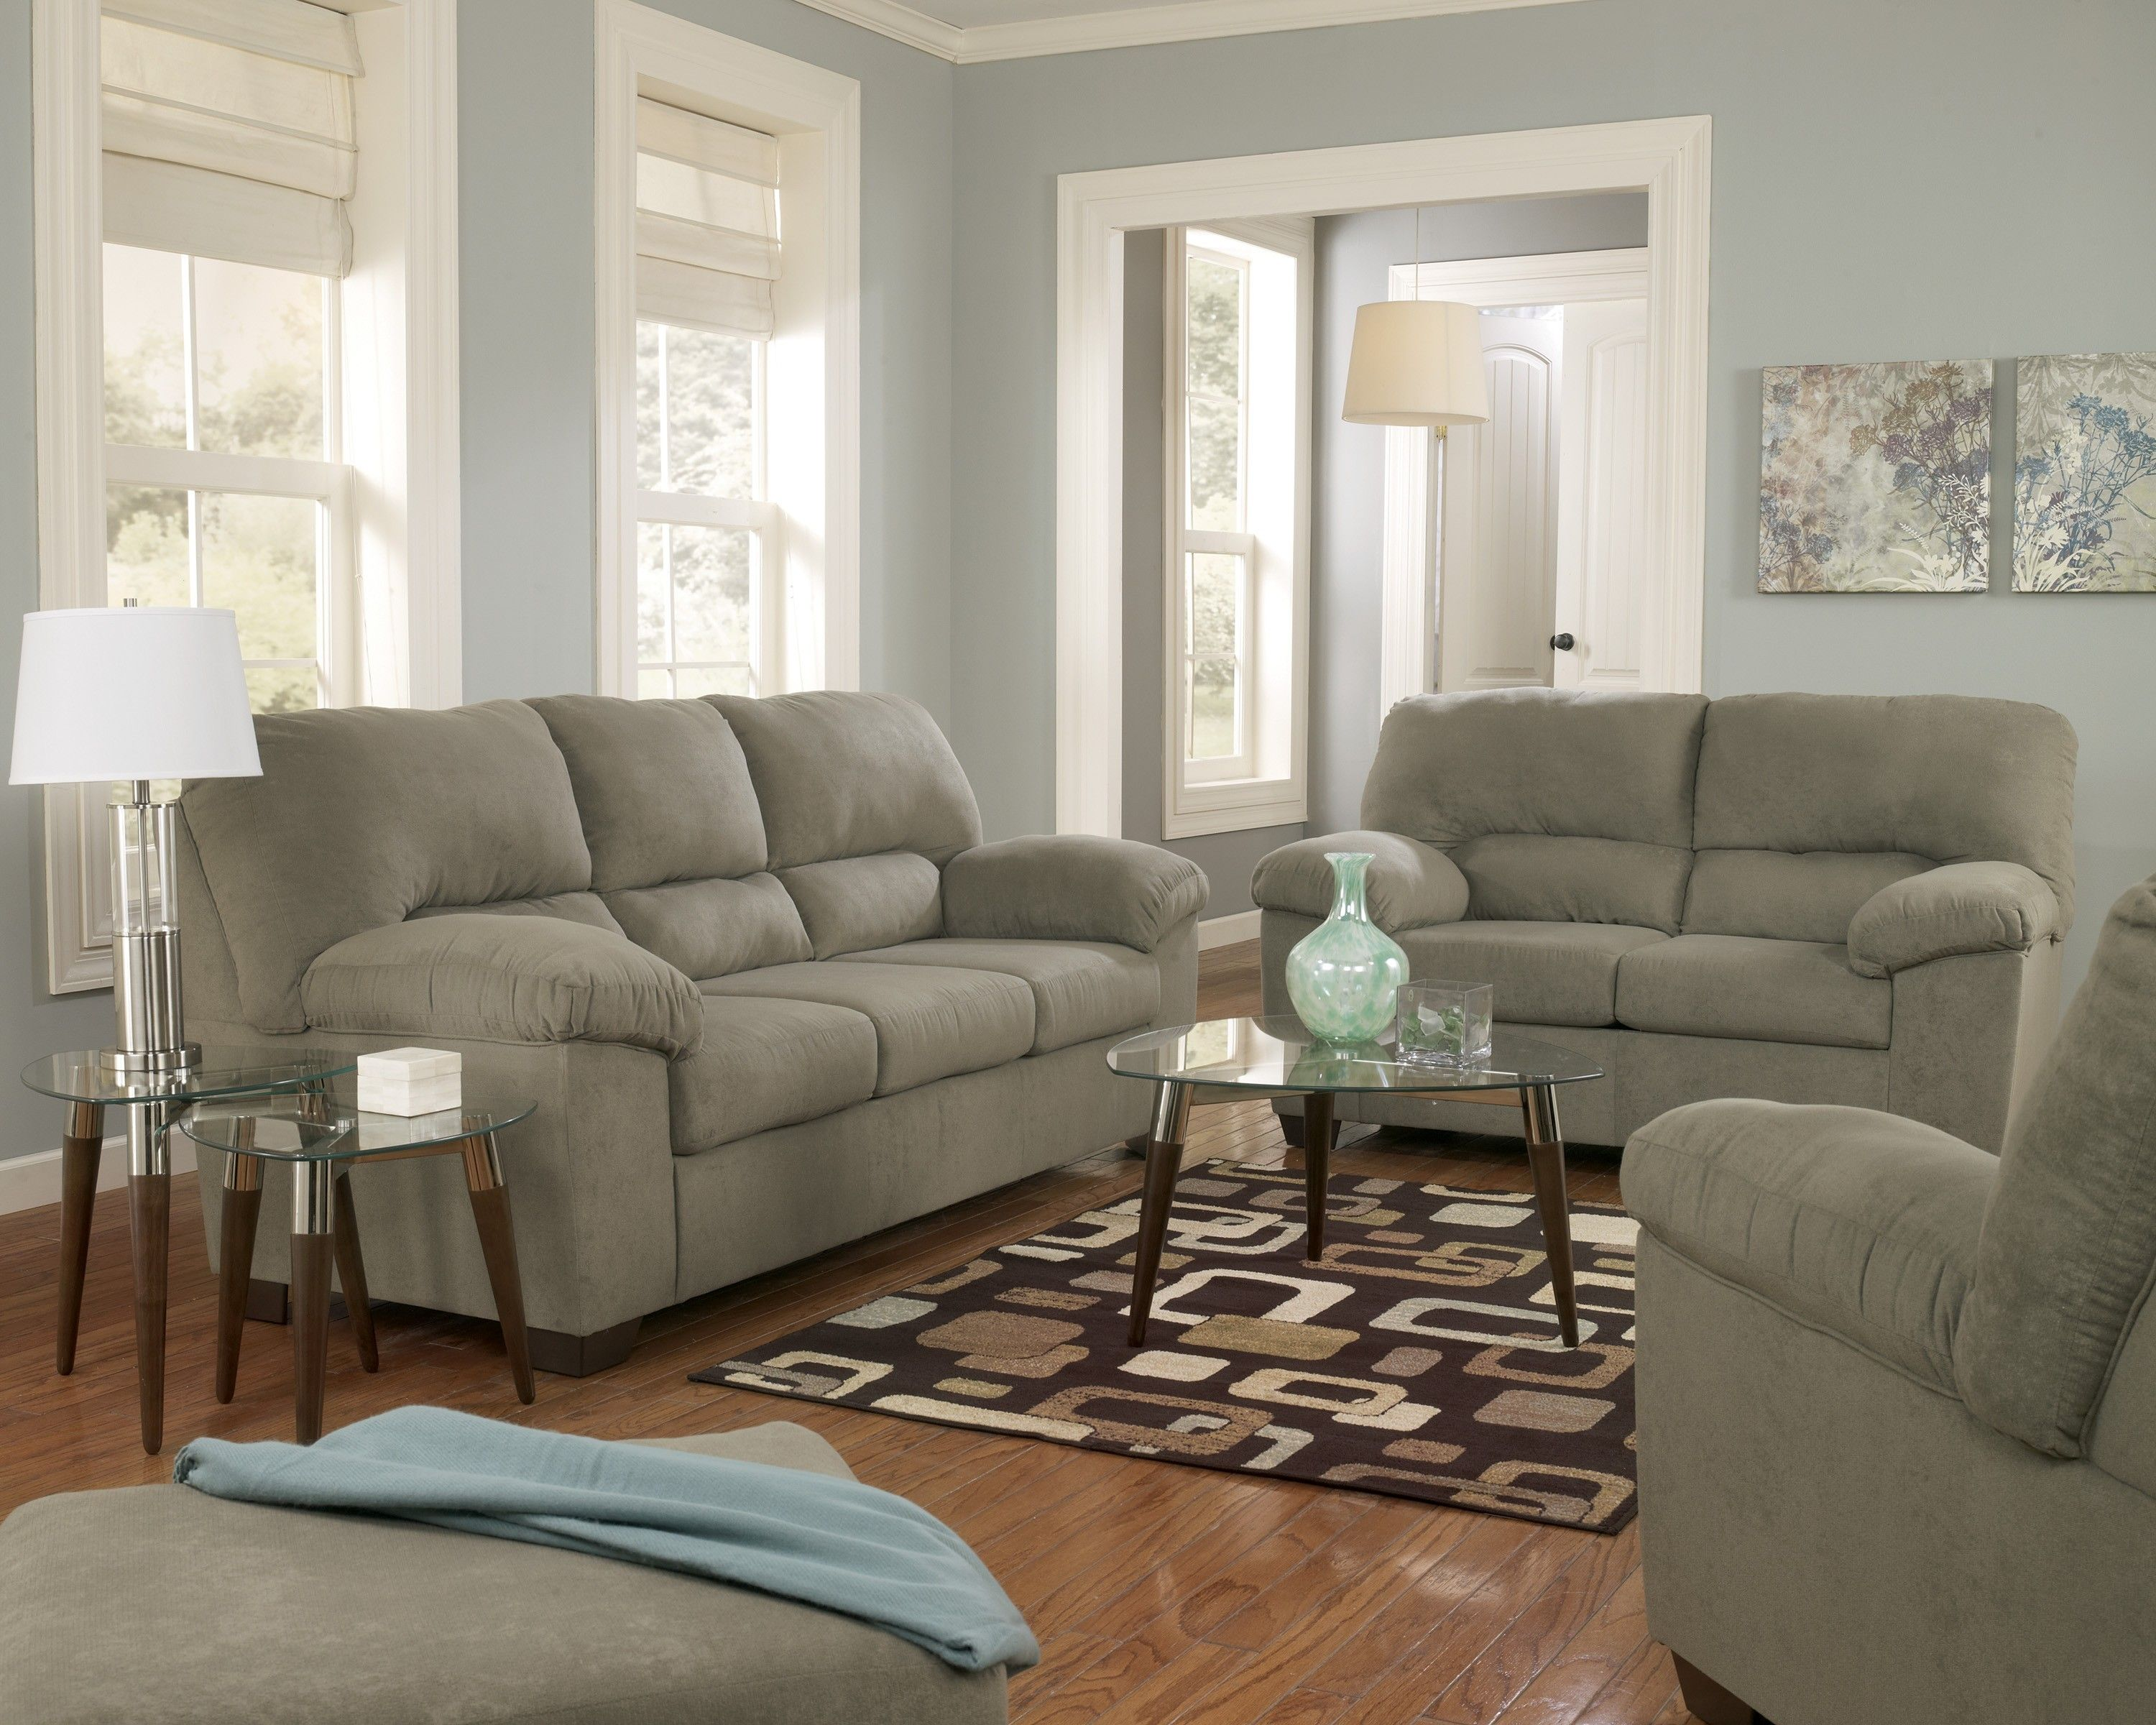 living-room-sofas-modern-home-decorating-couch-sale-sectional-sofa